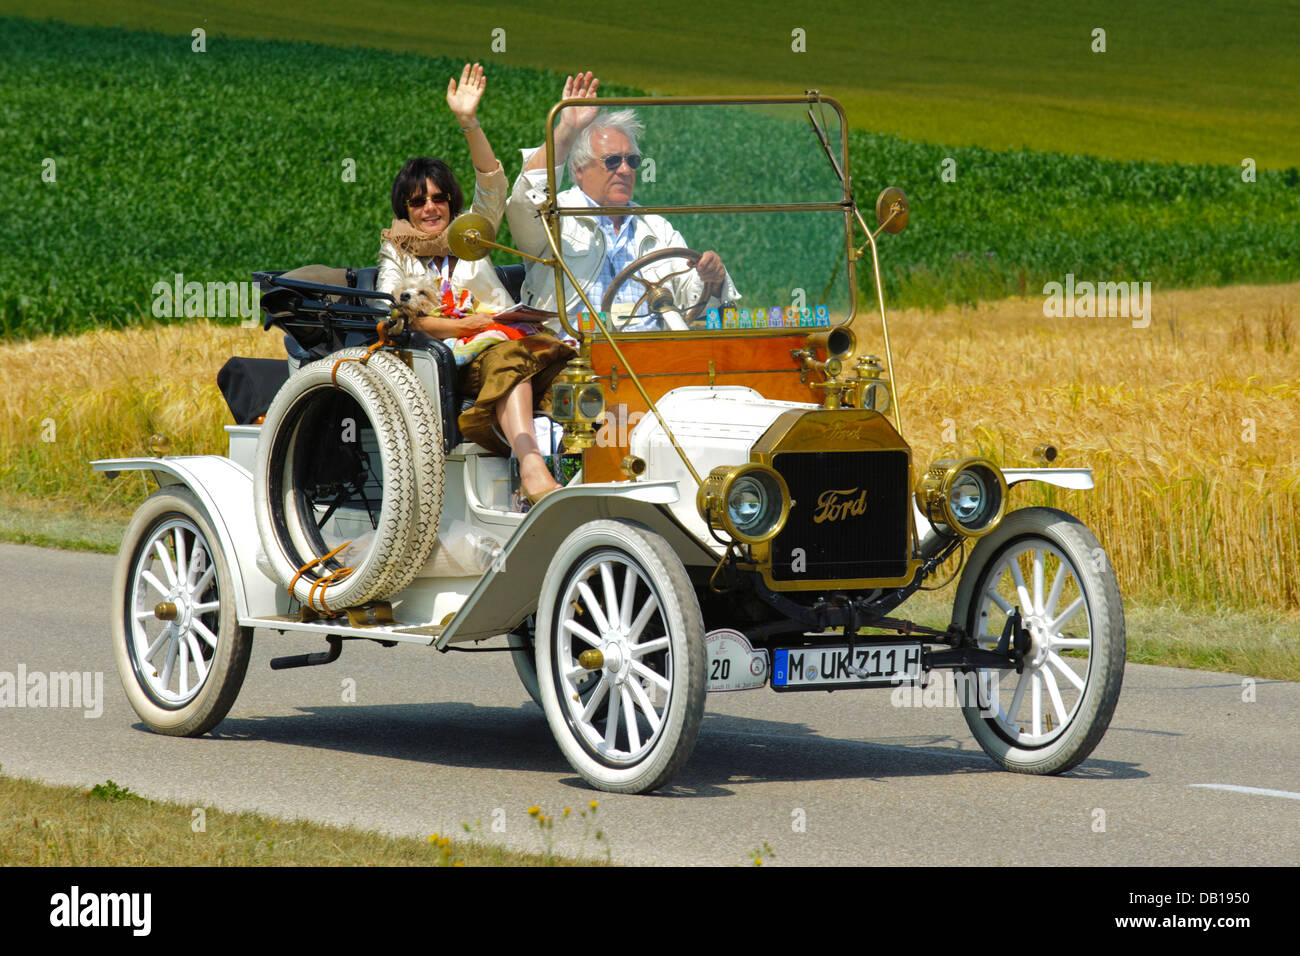 Ford T Roadster, built at year 1911, photo taken on July 13, 2013 in Landsberg, Germany - Stock Image